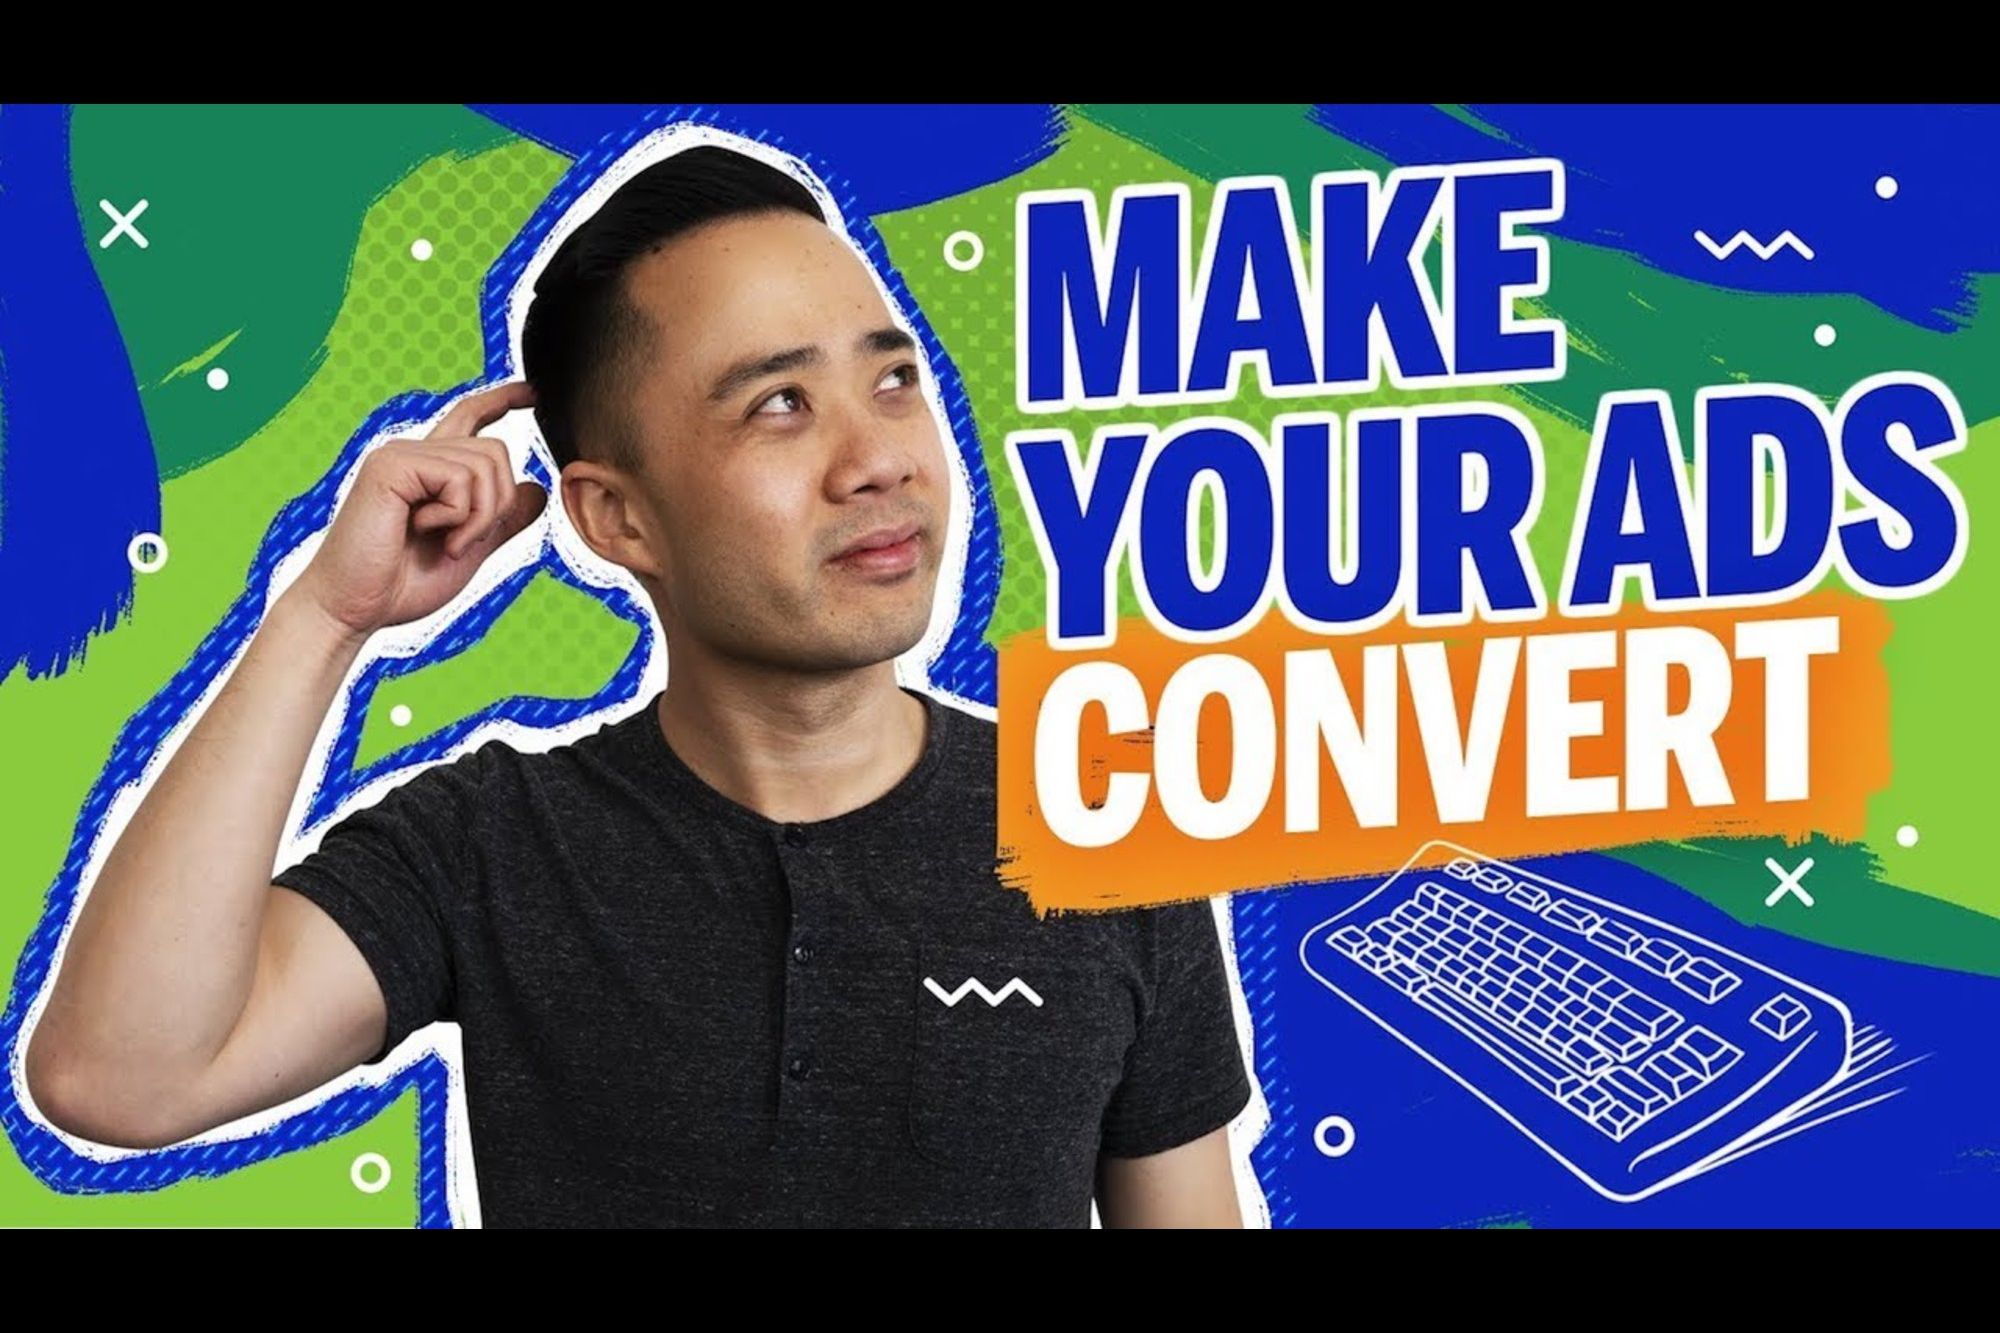 How to Increase the Conversion Rate on Your Ads